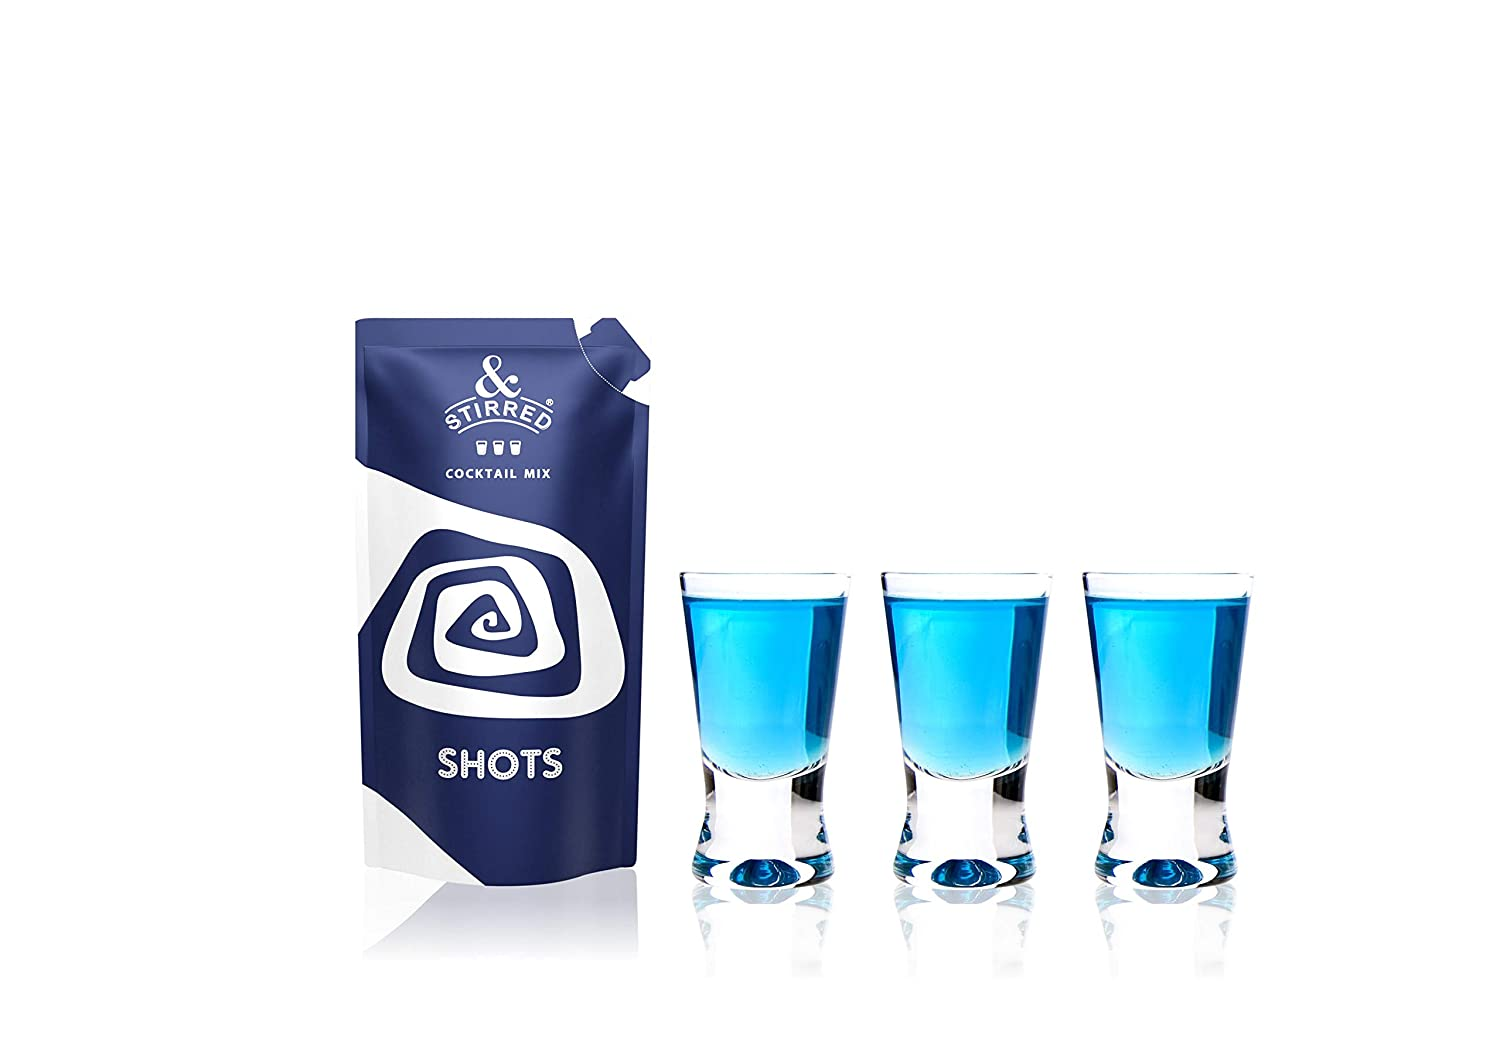 Kamikaze Shots Cocktail Mix By &Stirred - All About Baking